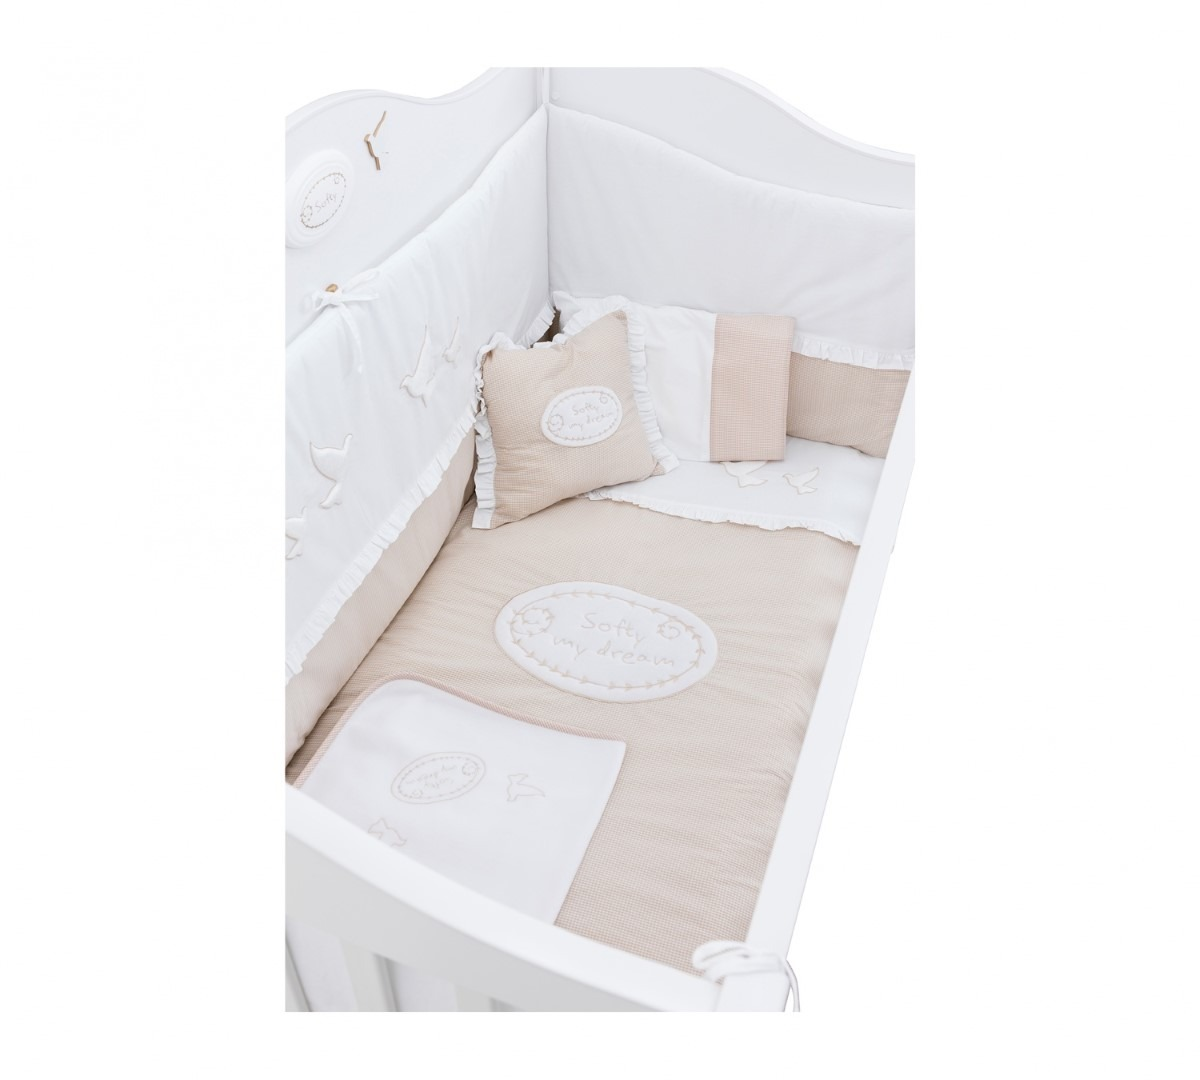 Softy-Bedding-Set-70x130-cm1